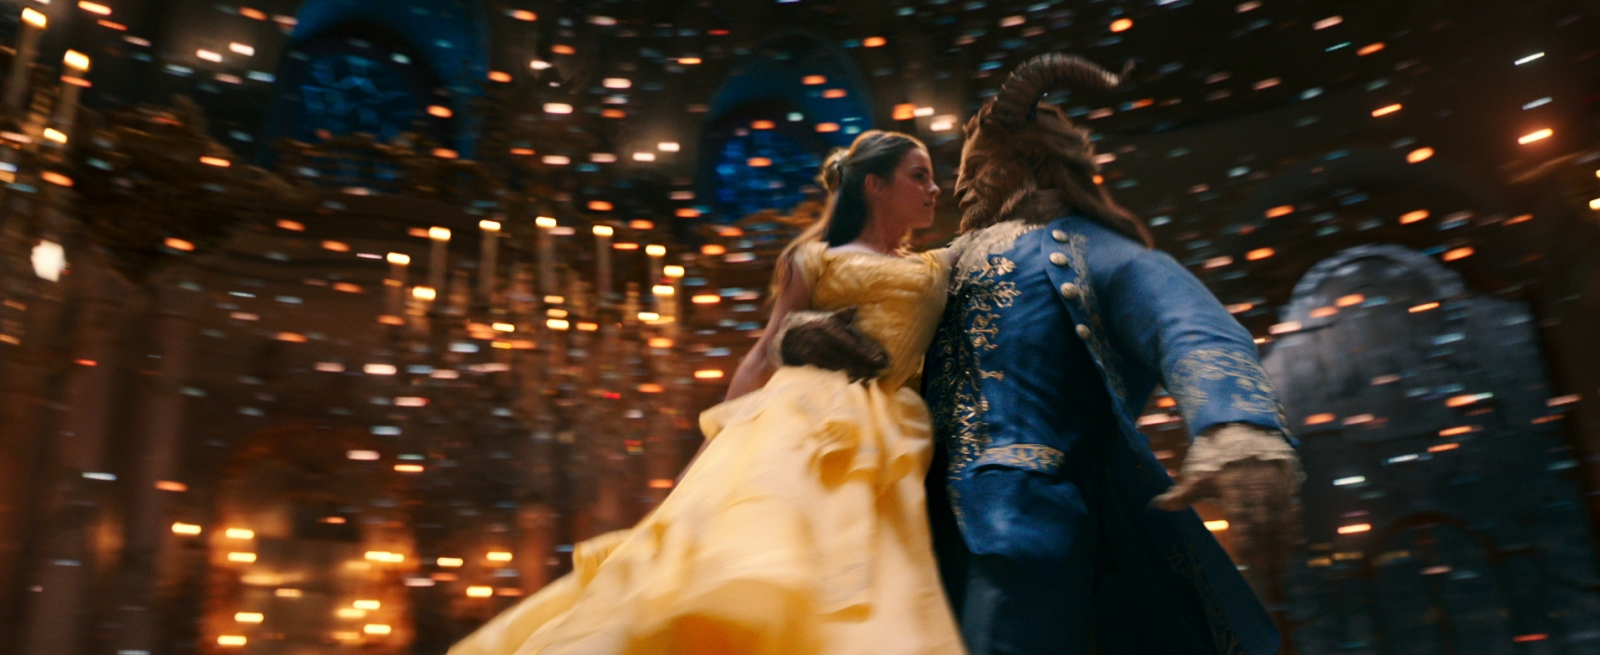 beauty and the beast  walt disney says no to removing gay